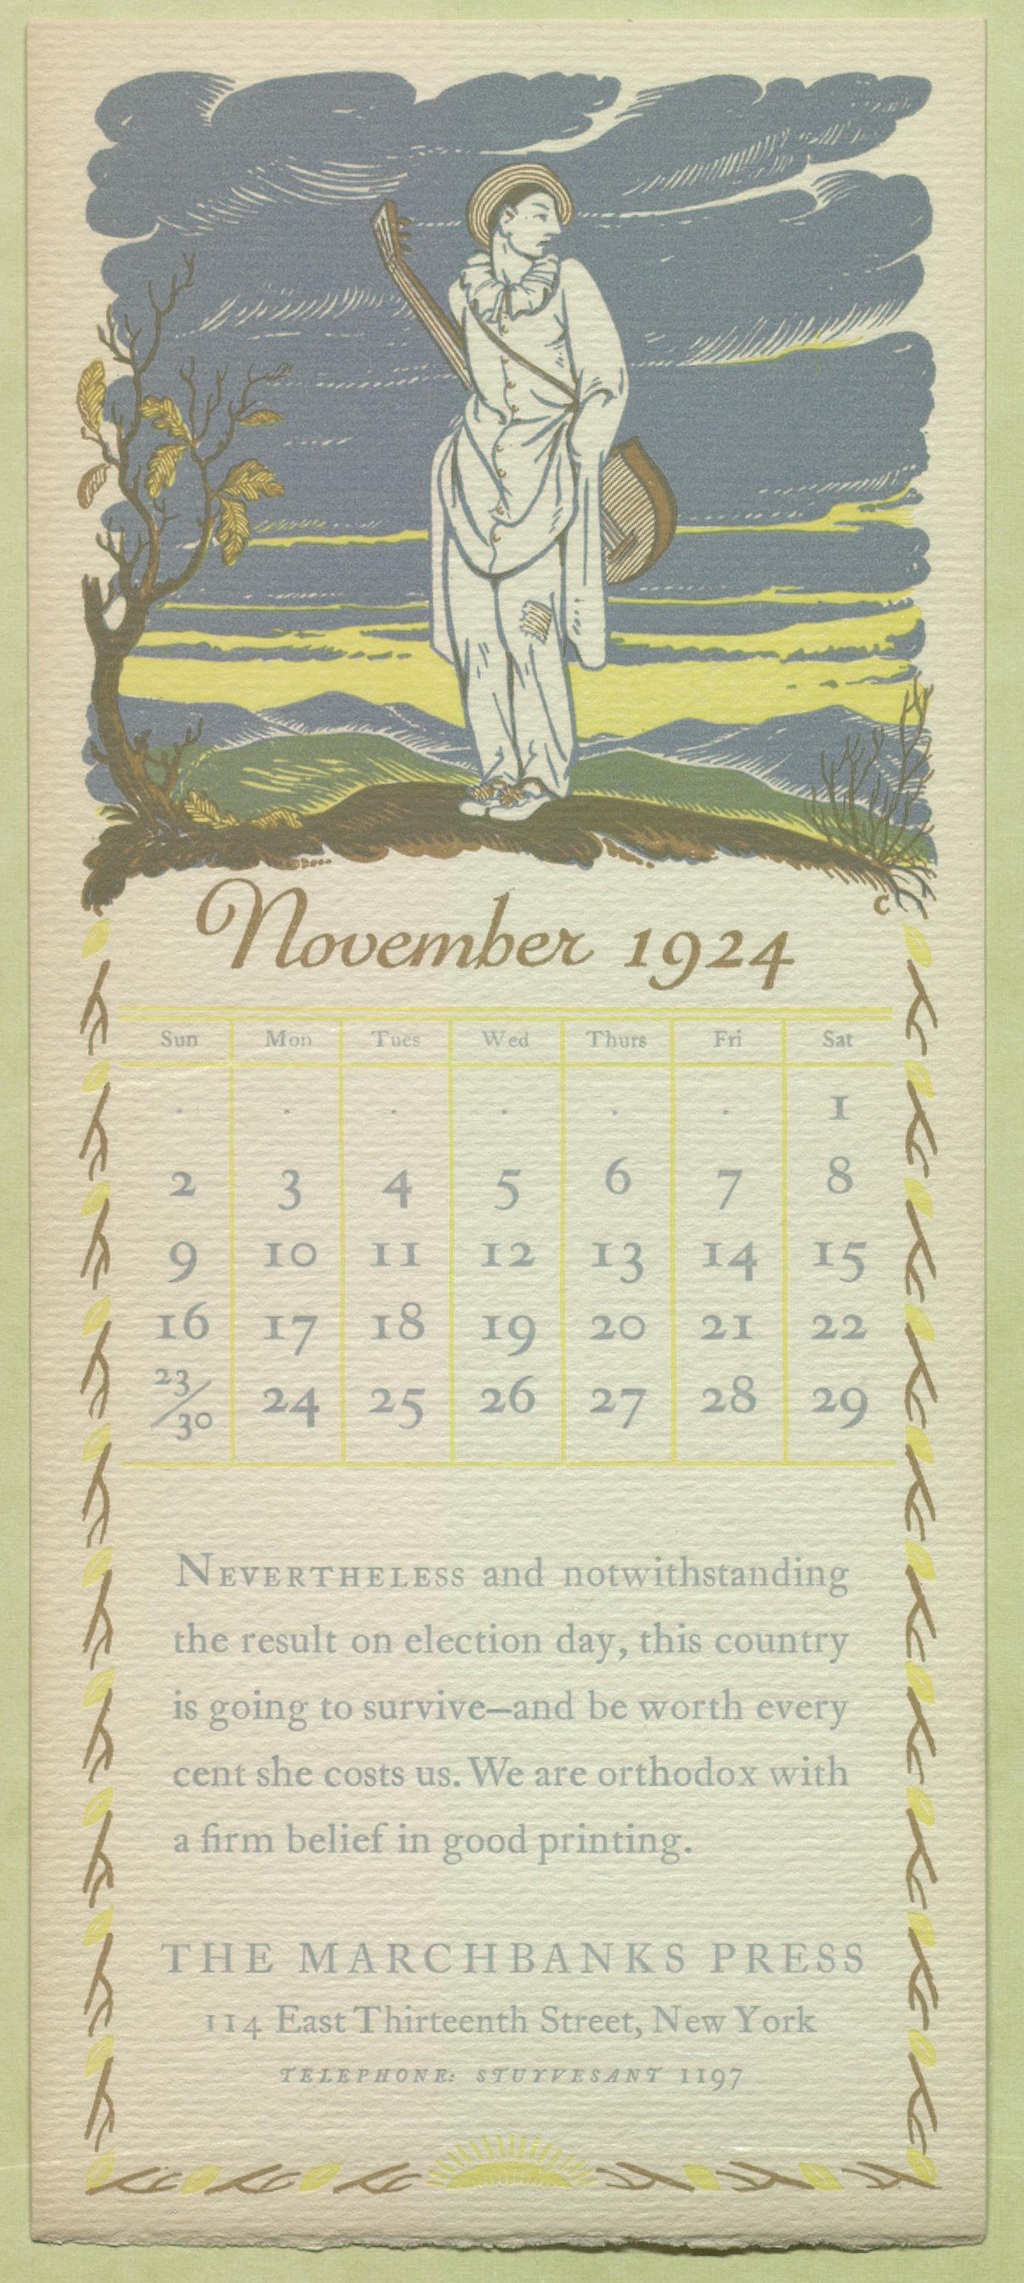 The Marchbanks Calendar November 1924. Design by T.M. Cleland. Courtesy of the Thomas Fisher Rare Book Library, University of Toronto